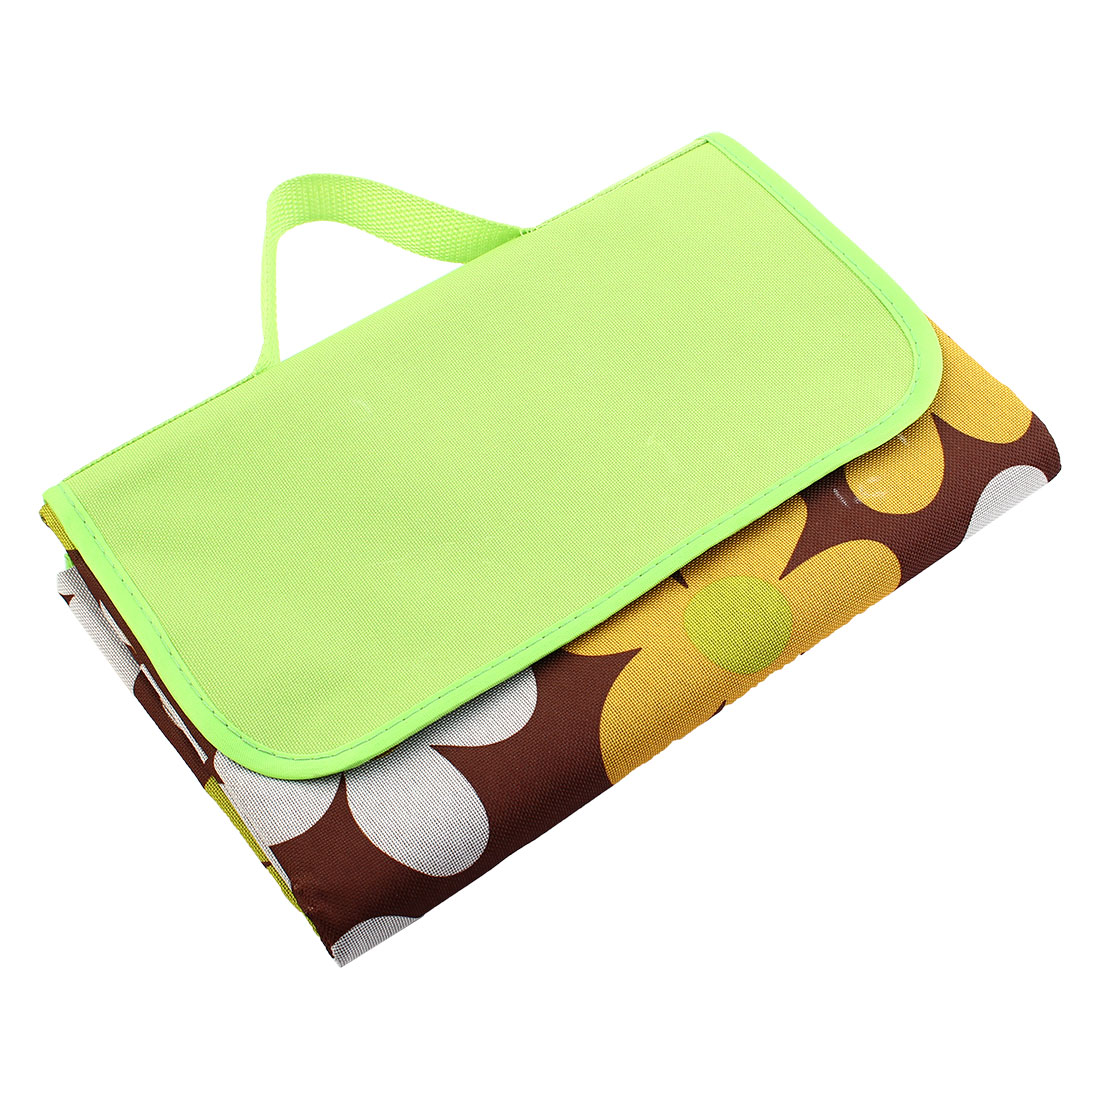 Folral Print Moisture-proof Pad Foldable Picnic Blanket Portable Camping Mat